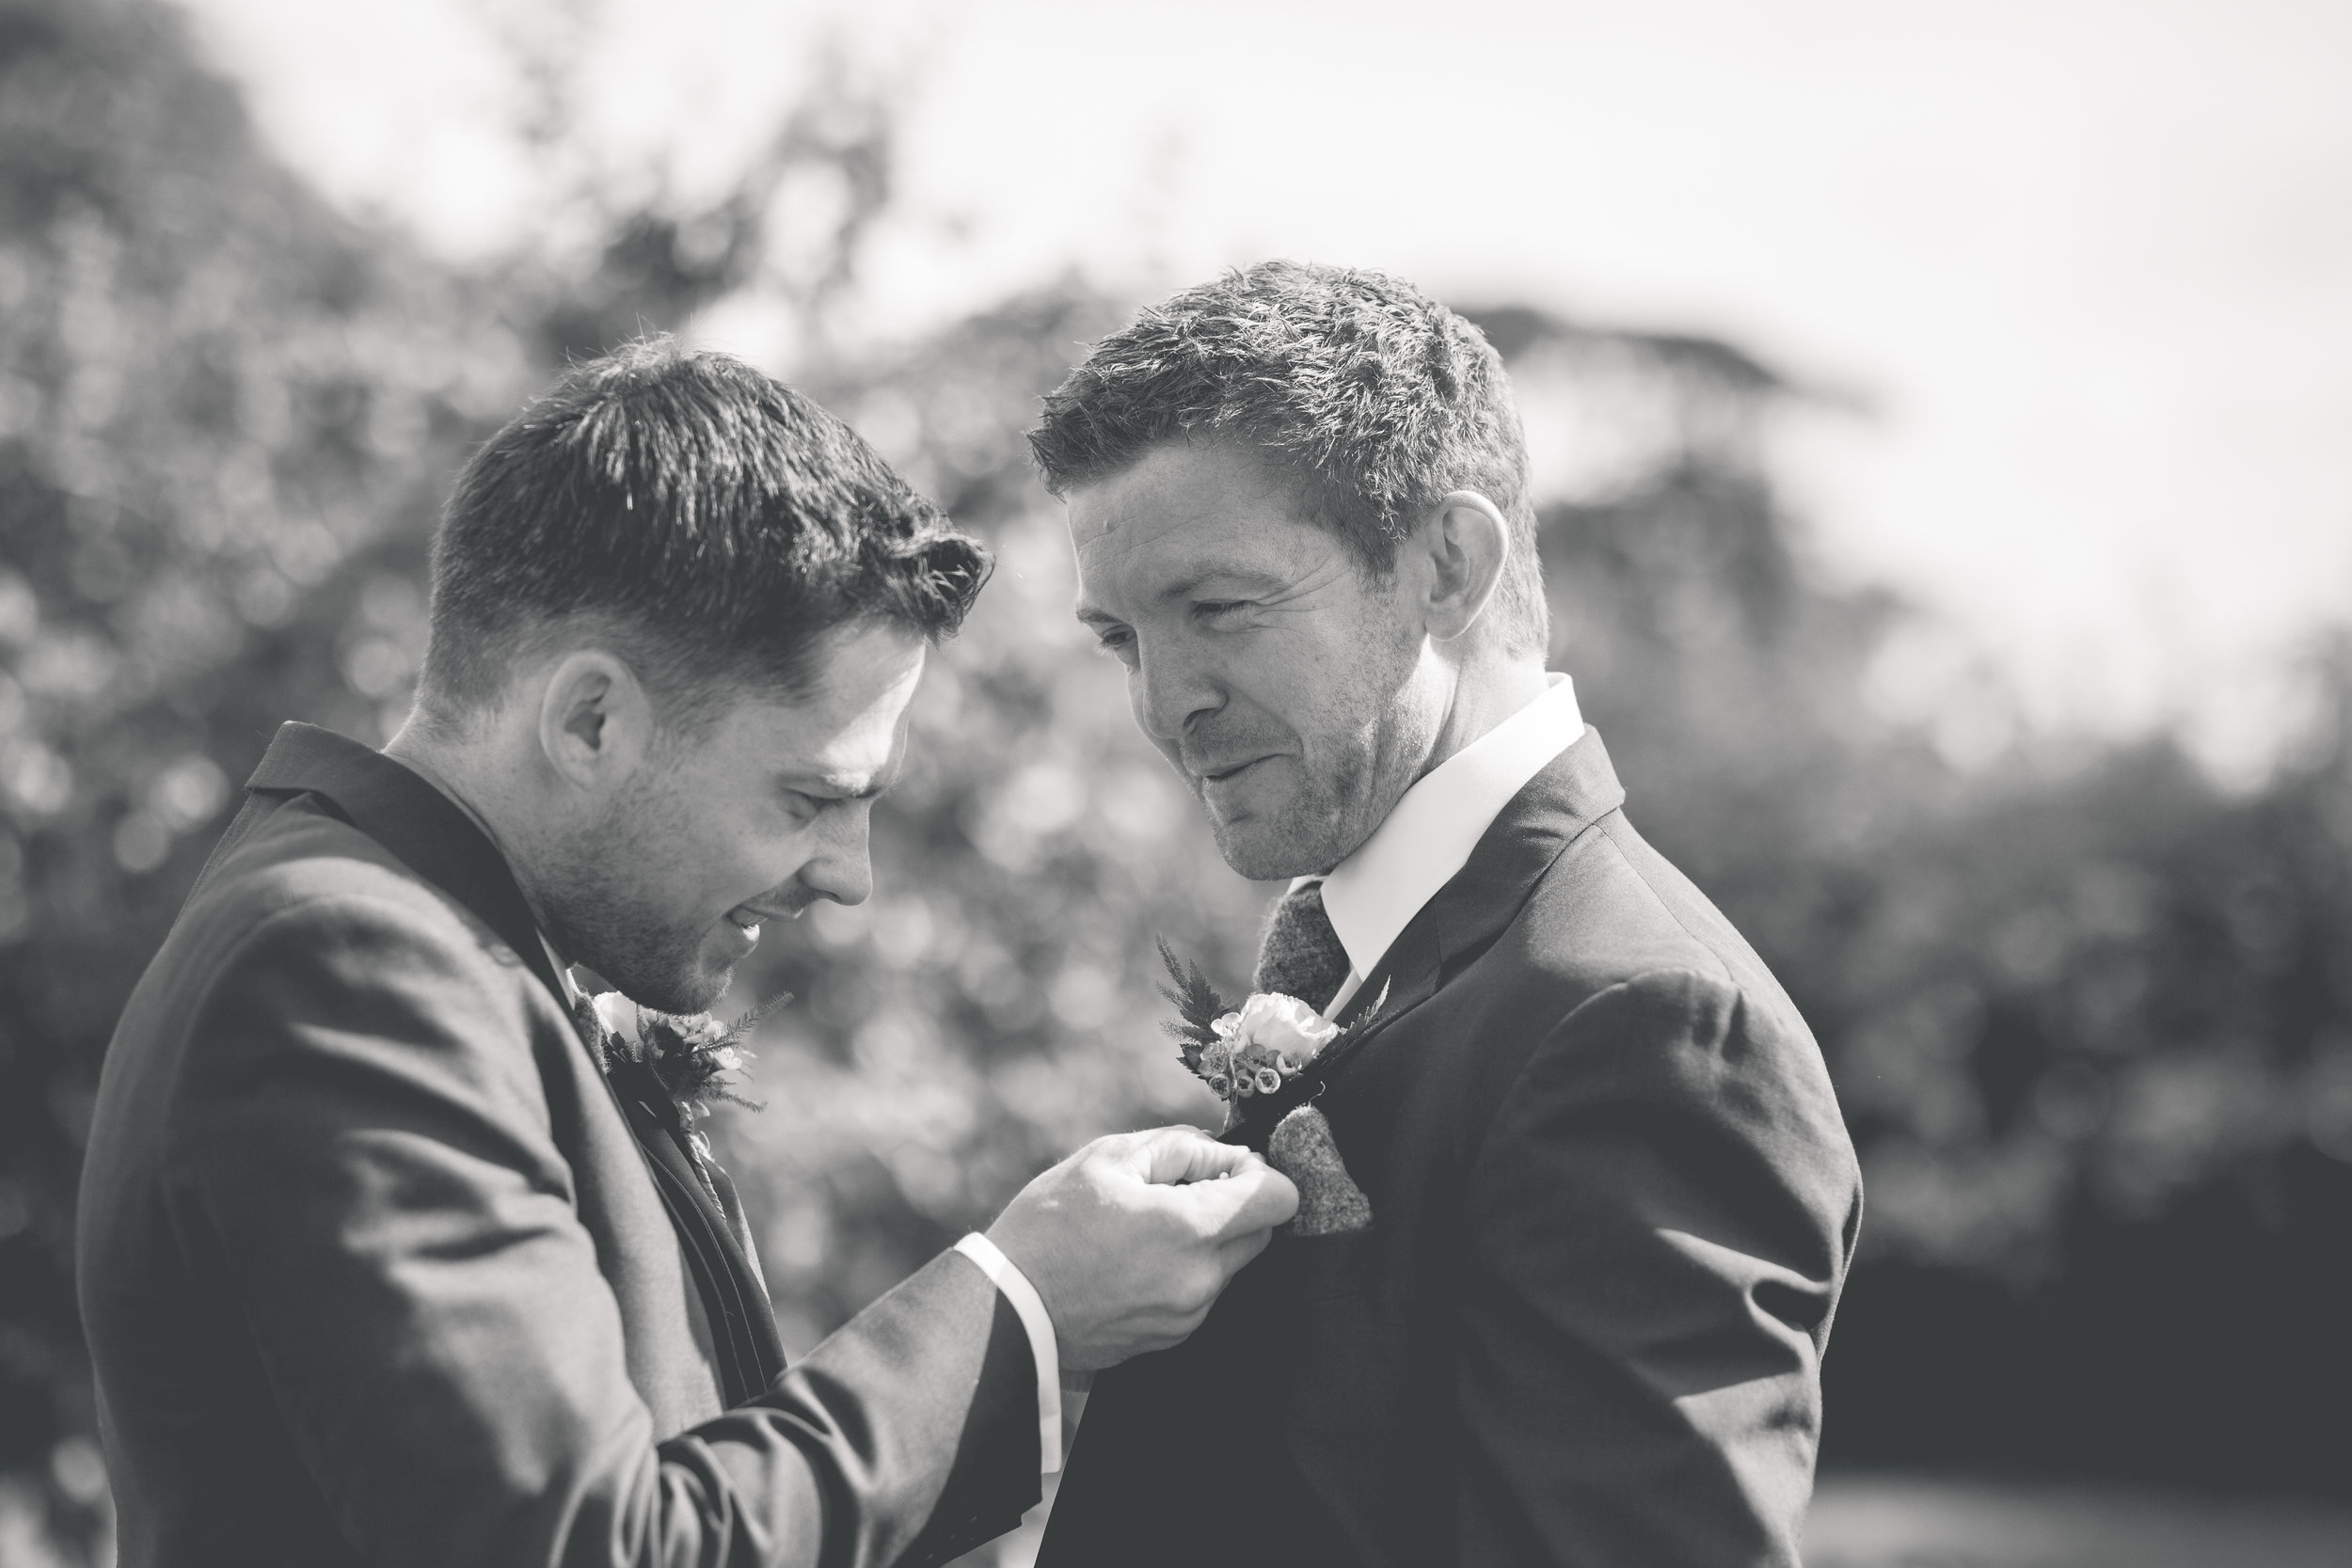 Brian McEwan Wedding Photography | Carol-Anne & Sean | Groom & Groomsmen-27.jpg